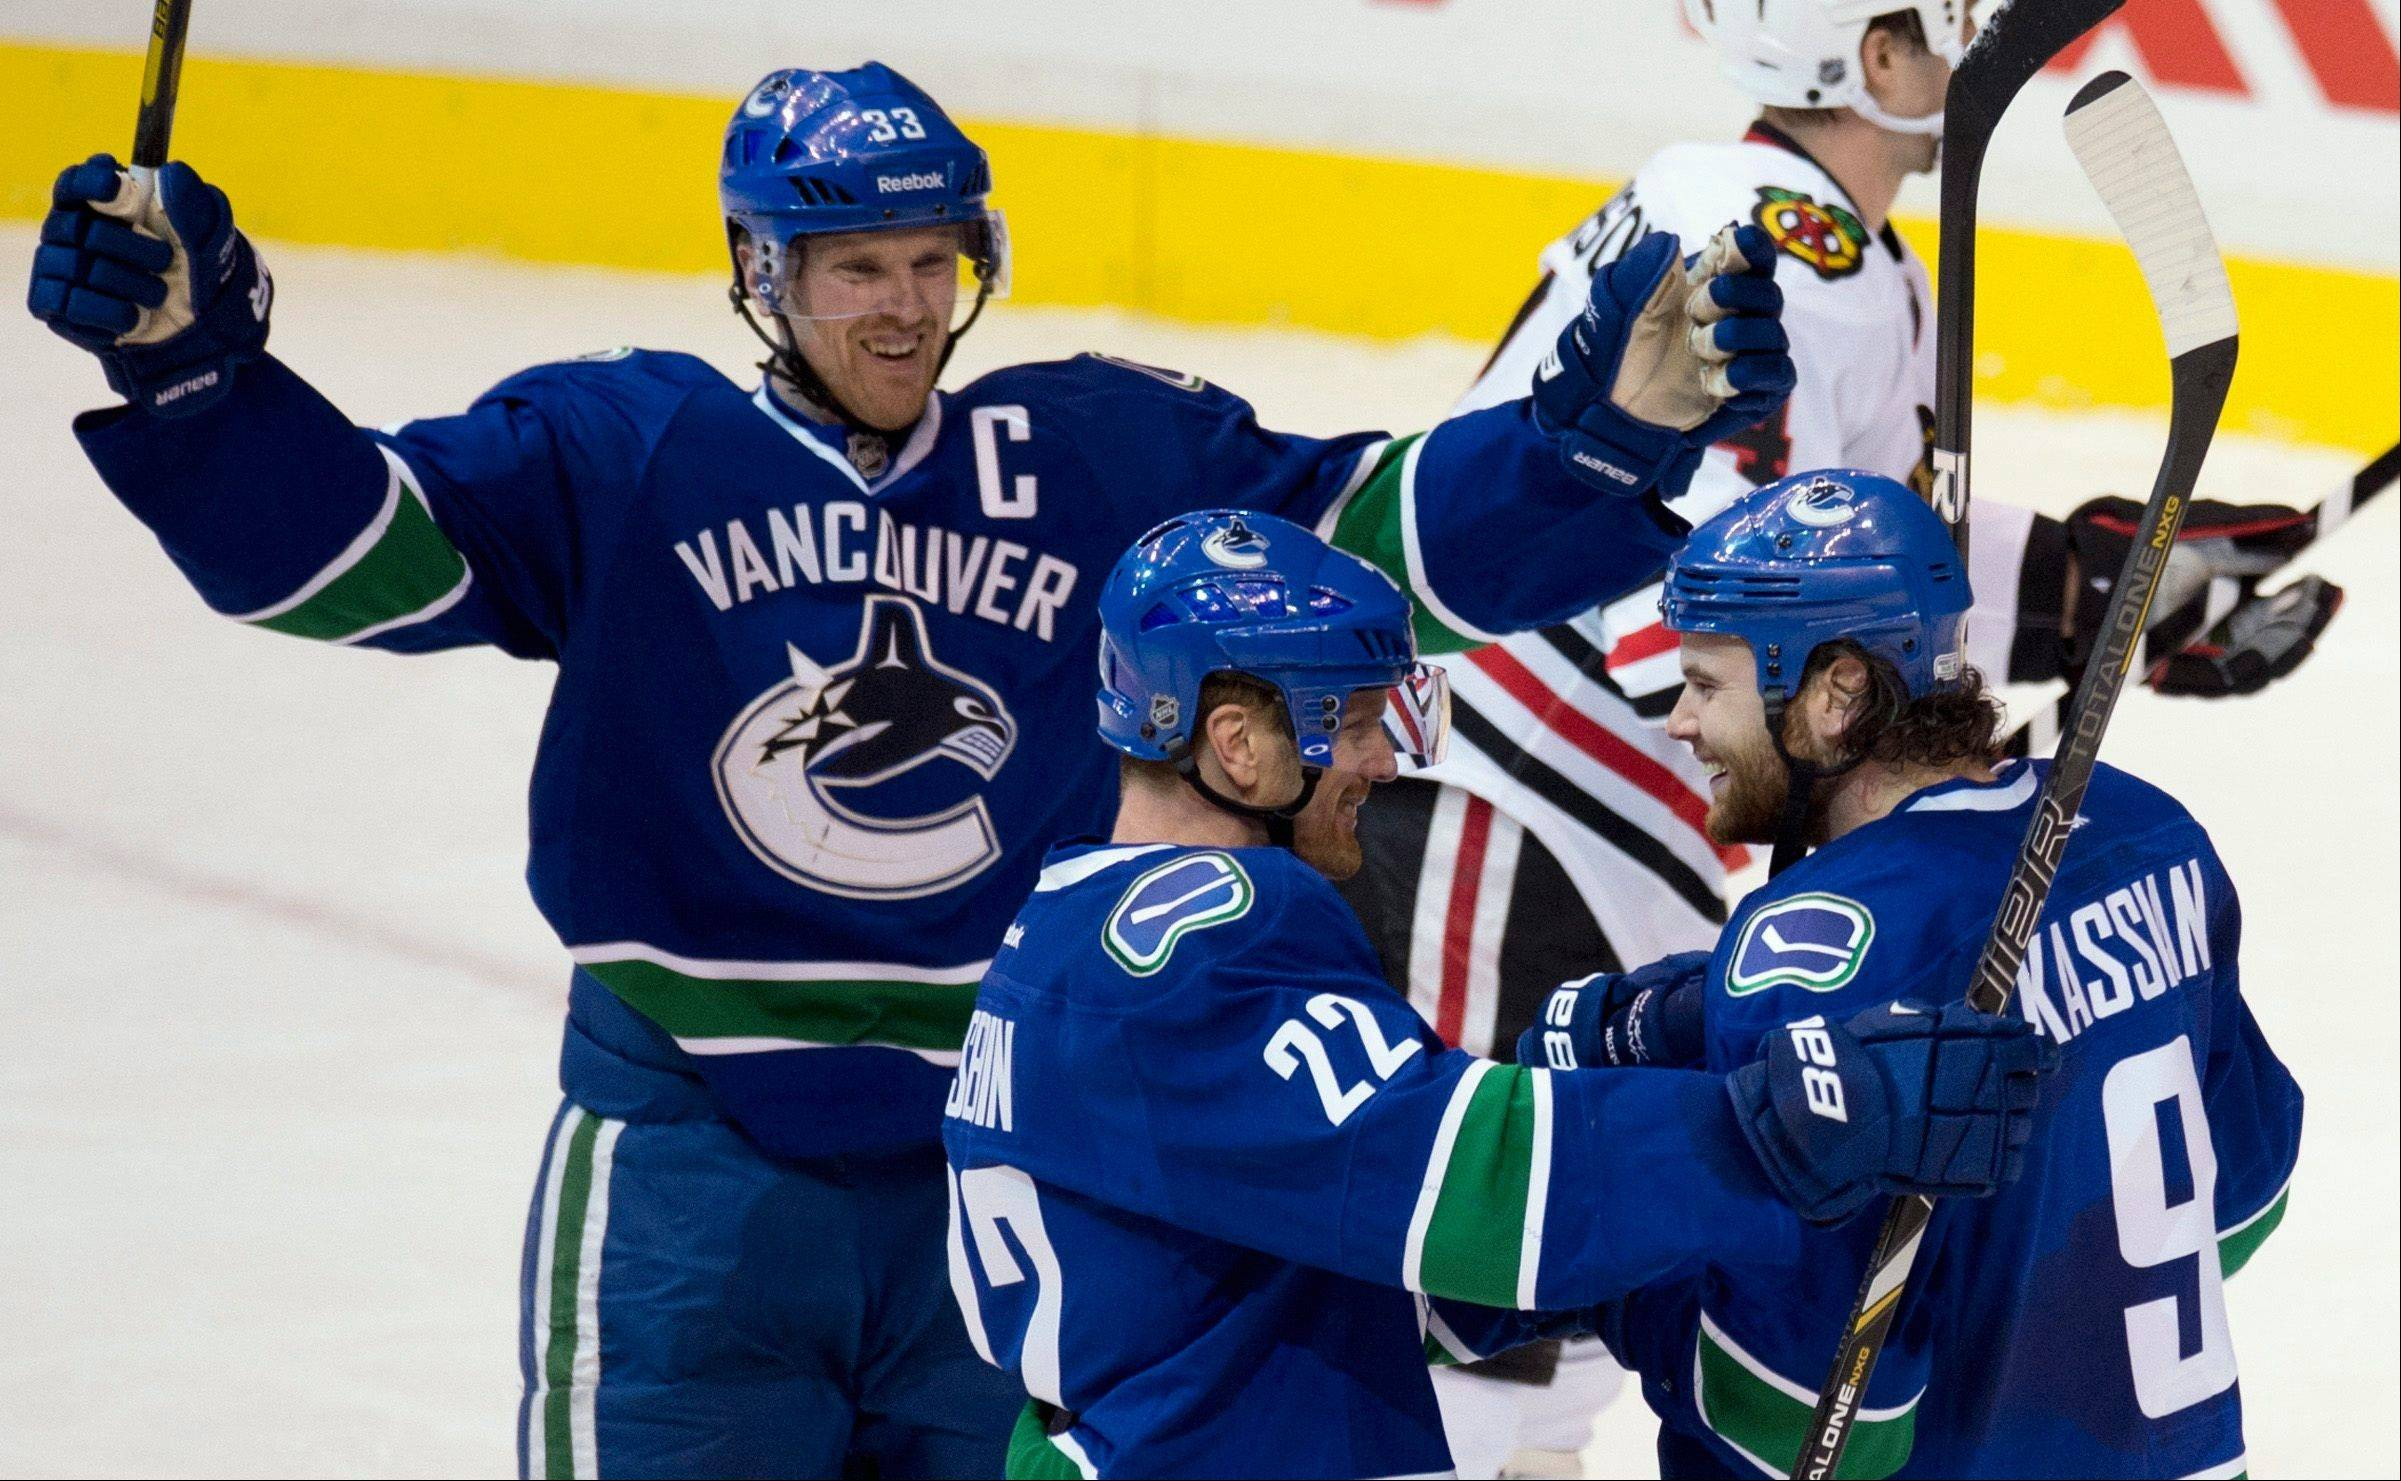 Vancouver Canucks right wing Zack Kassian (9) celebrates his goal against the Chicago Blackhawks with teammate Daniel Sedin (22) and Henrik Sedin (33) during the second period of an NHL hockey game in Vancouver, B.C. on Monday, April 22, 2013.